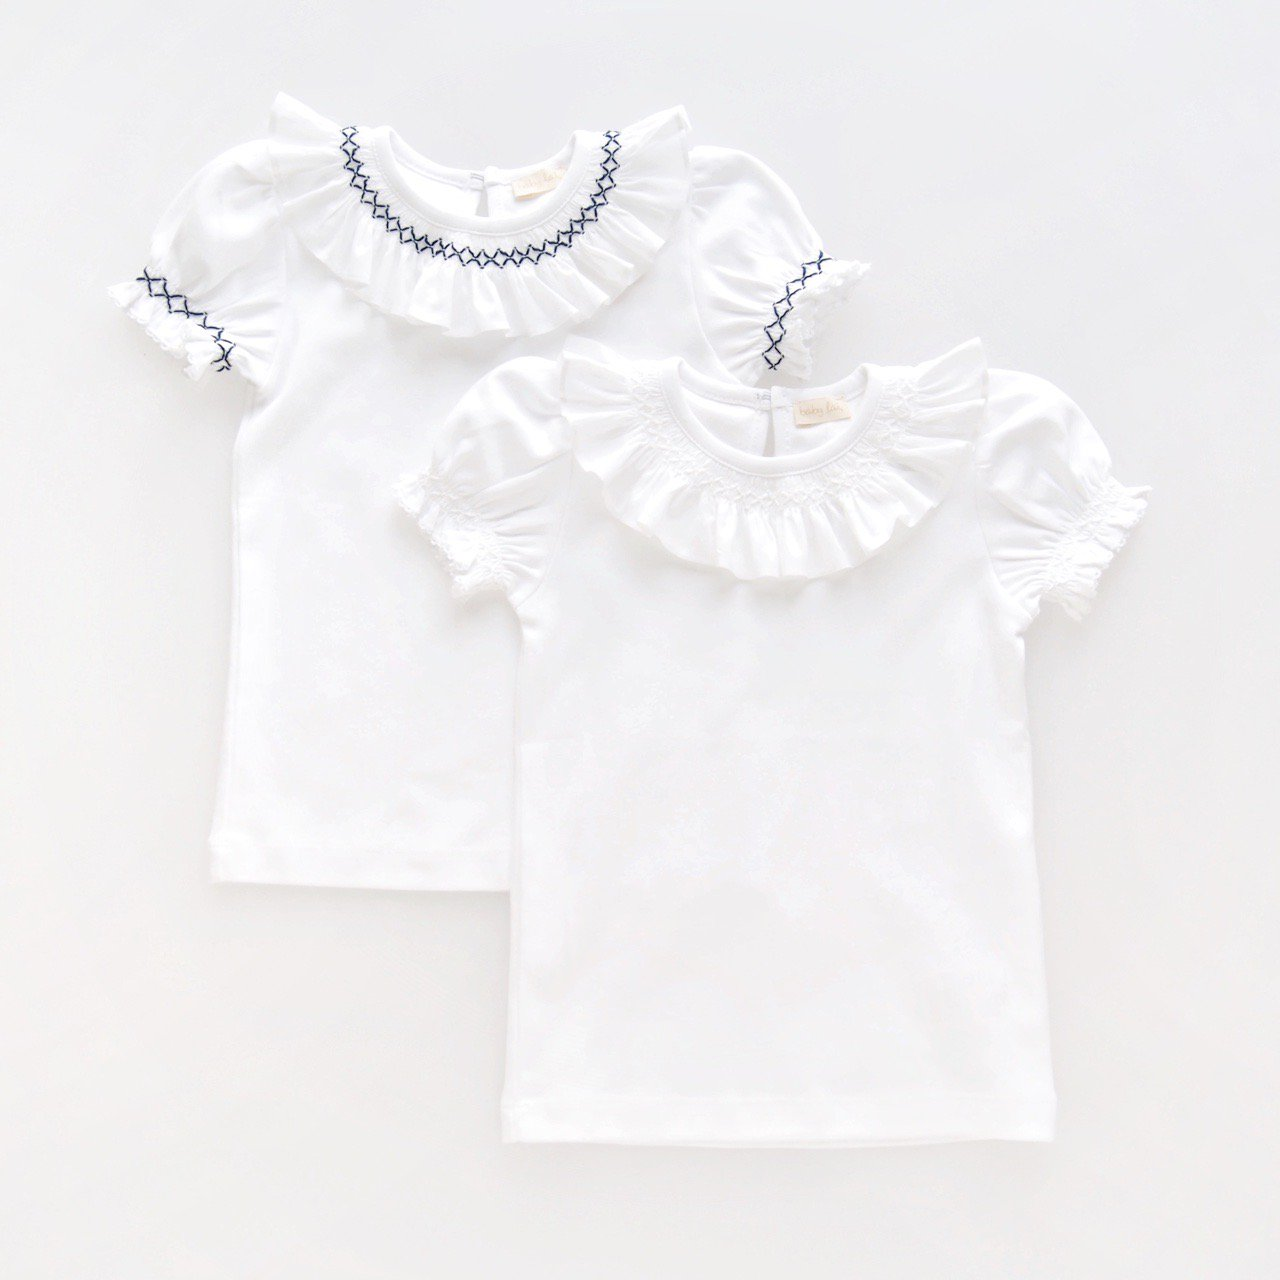 <img class='new_mark_img1' src='https://img.shop-pro.jp/img/new/icons1.gif' style='border:none;display:inline;margin:0px;padding:0px;width:auto;' />baby lai/ Laivicar - Smocking T-shirts (White/ Navy)